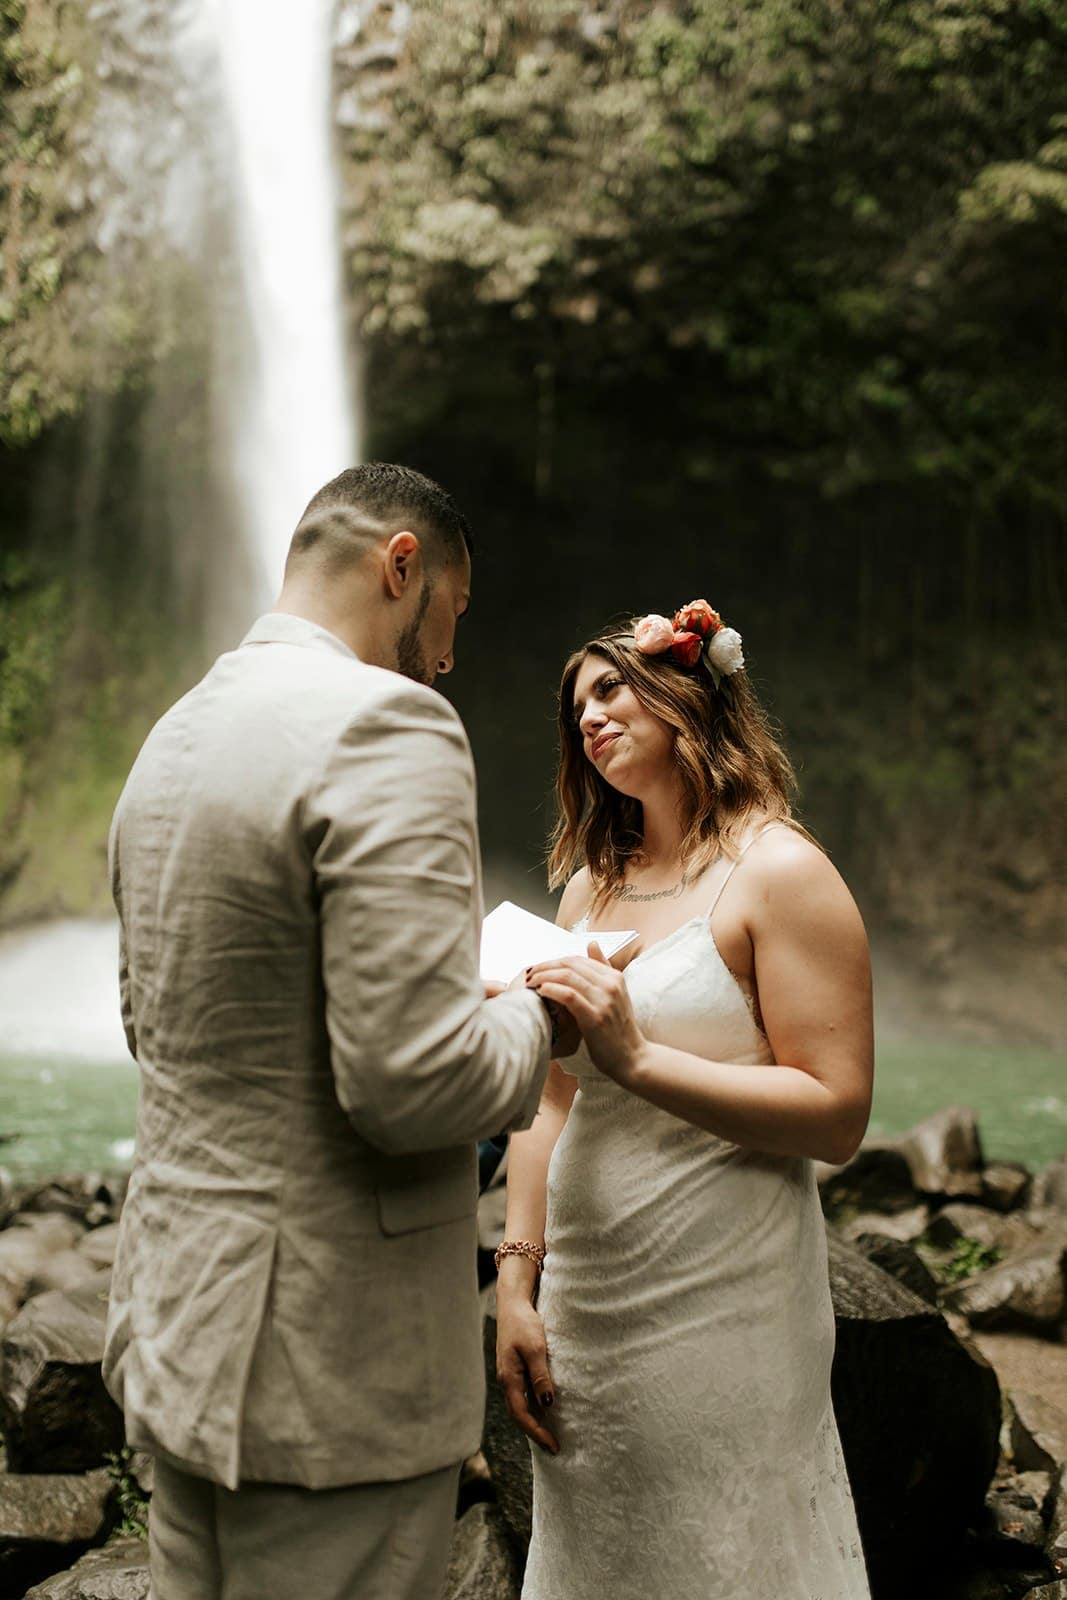 ceremony during this elopement